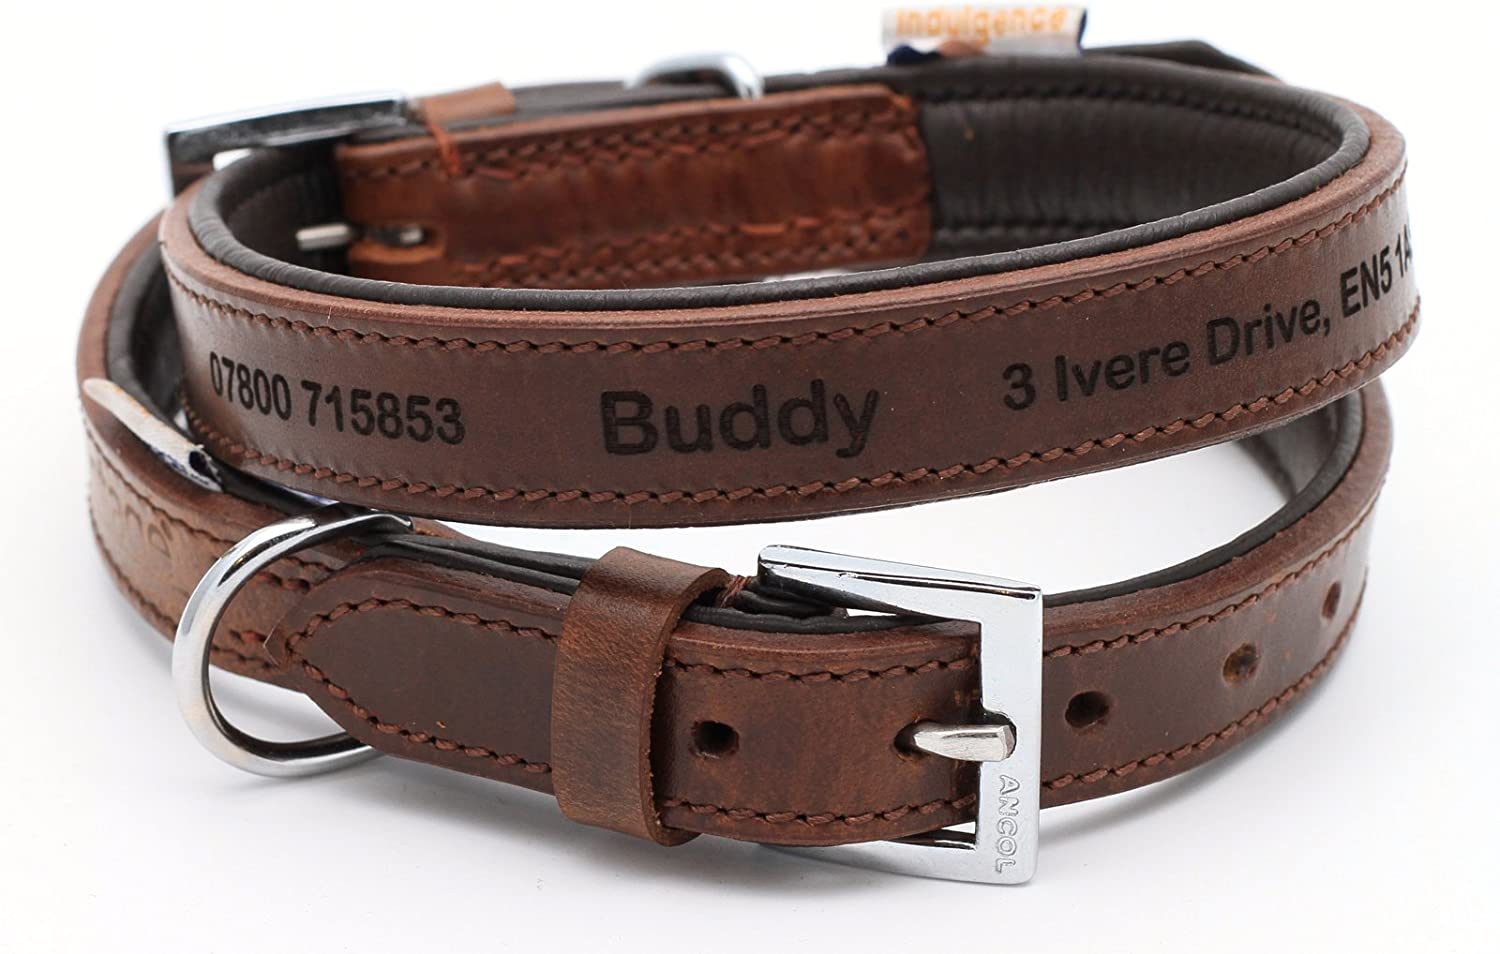 566d59ca4918 Premium Ancol Vintage Leather Padded Collar Personalized Dog ...